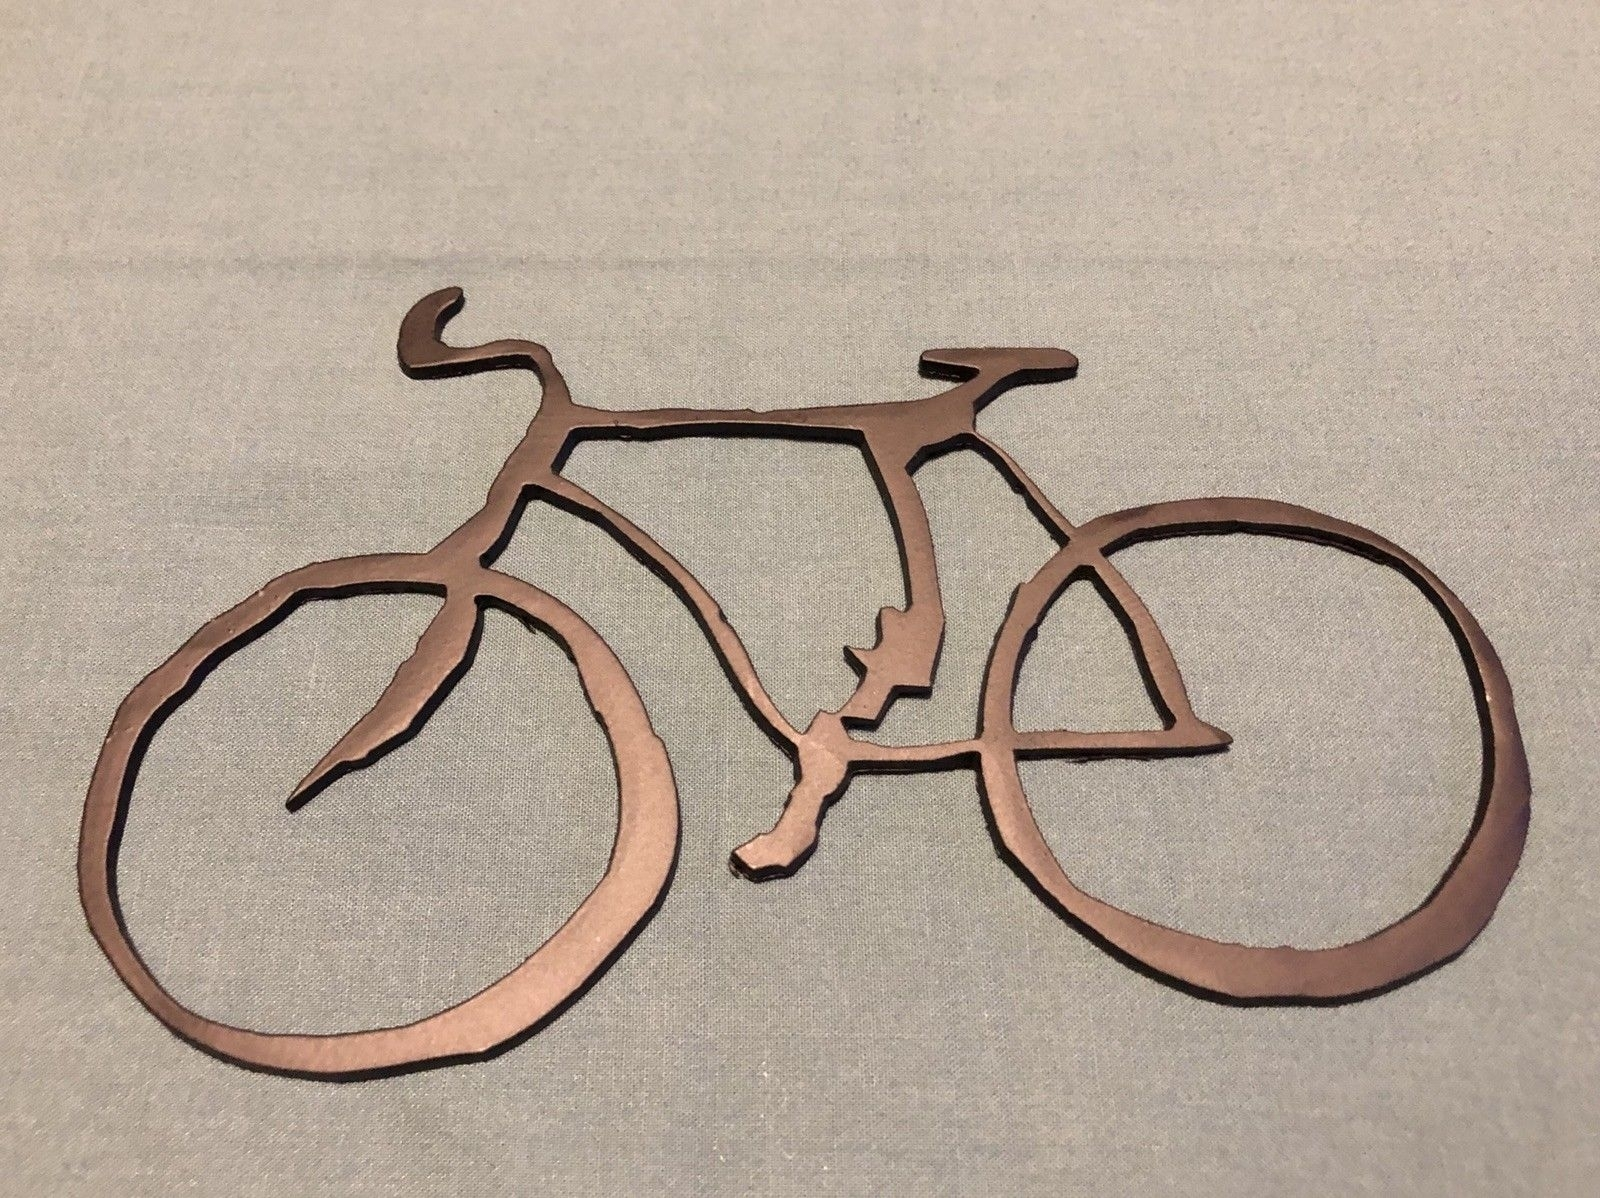 Bicycle Metal Wall Art Home Decor – $ (View 13 of 20)